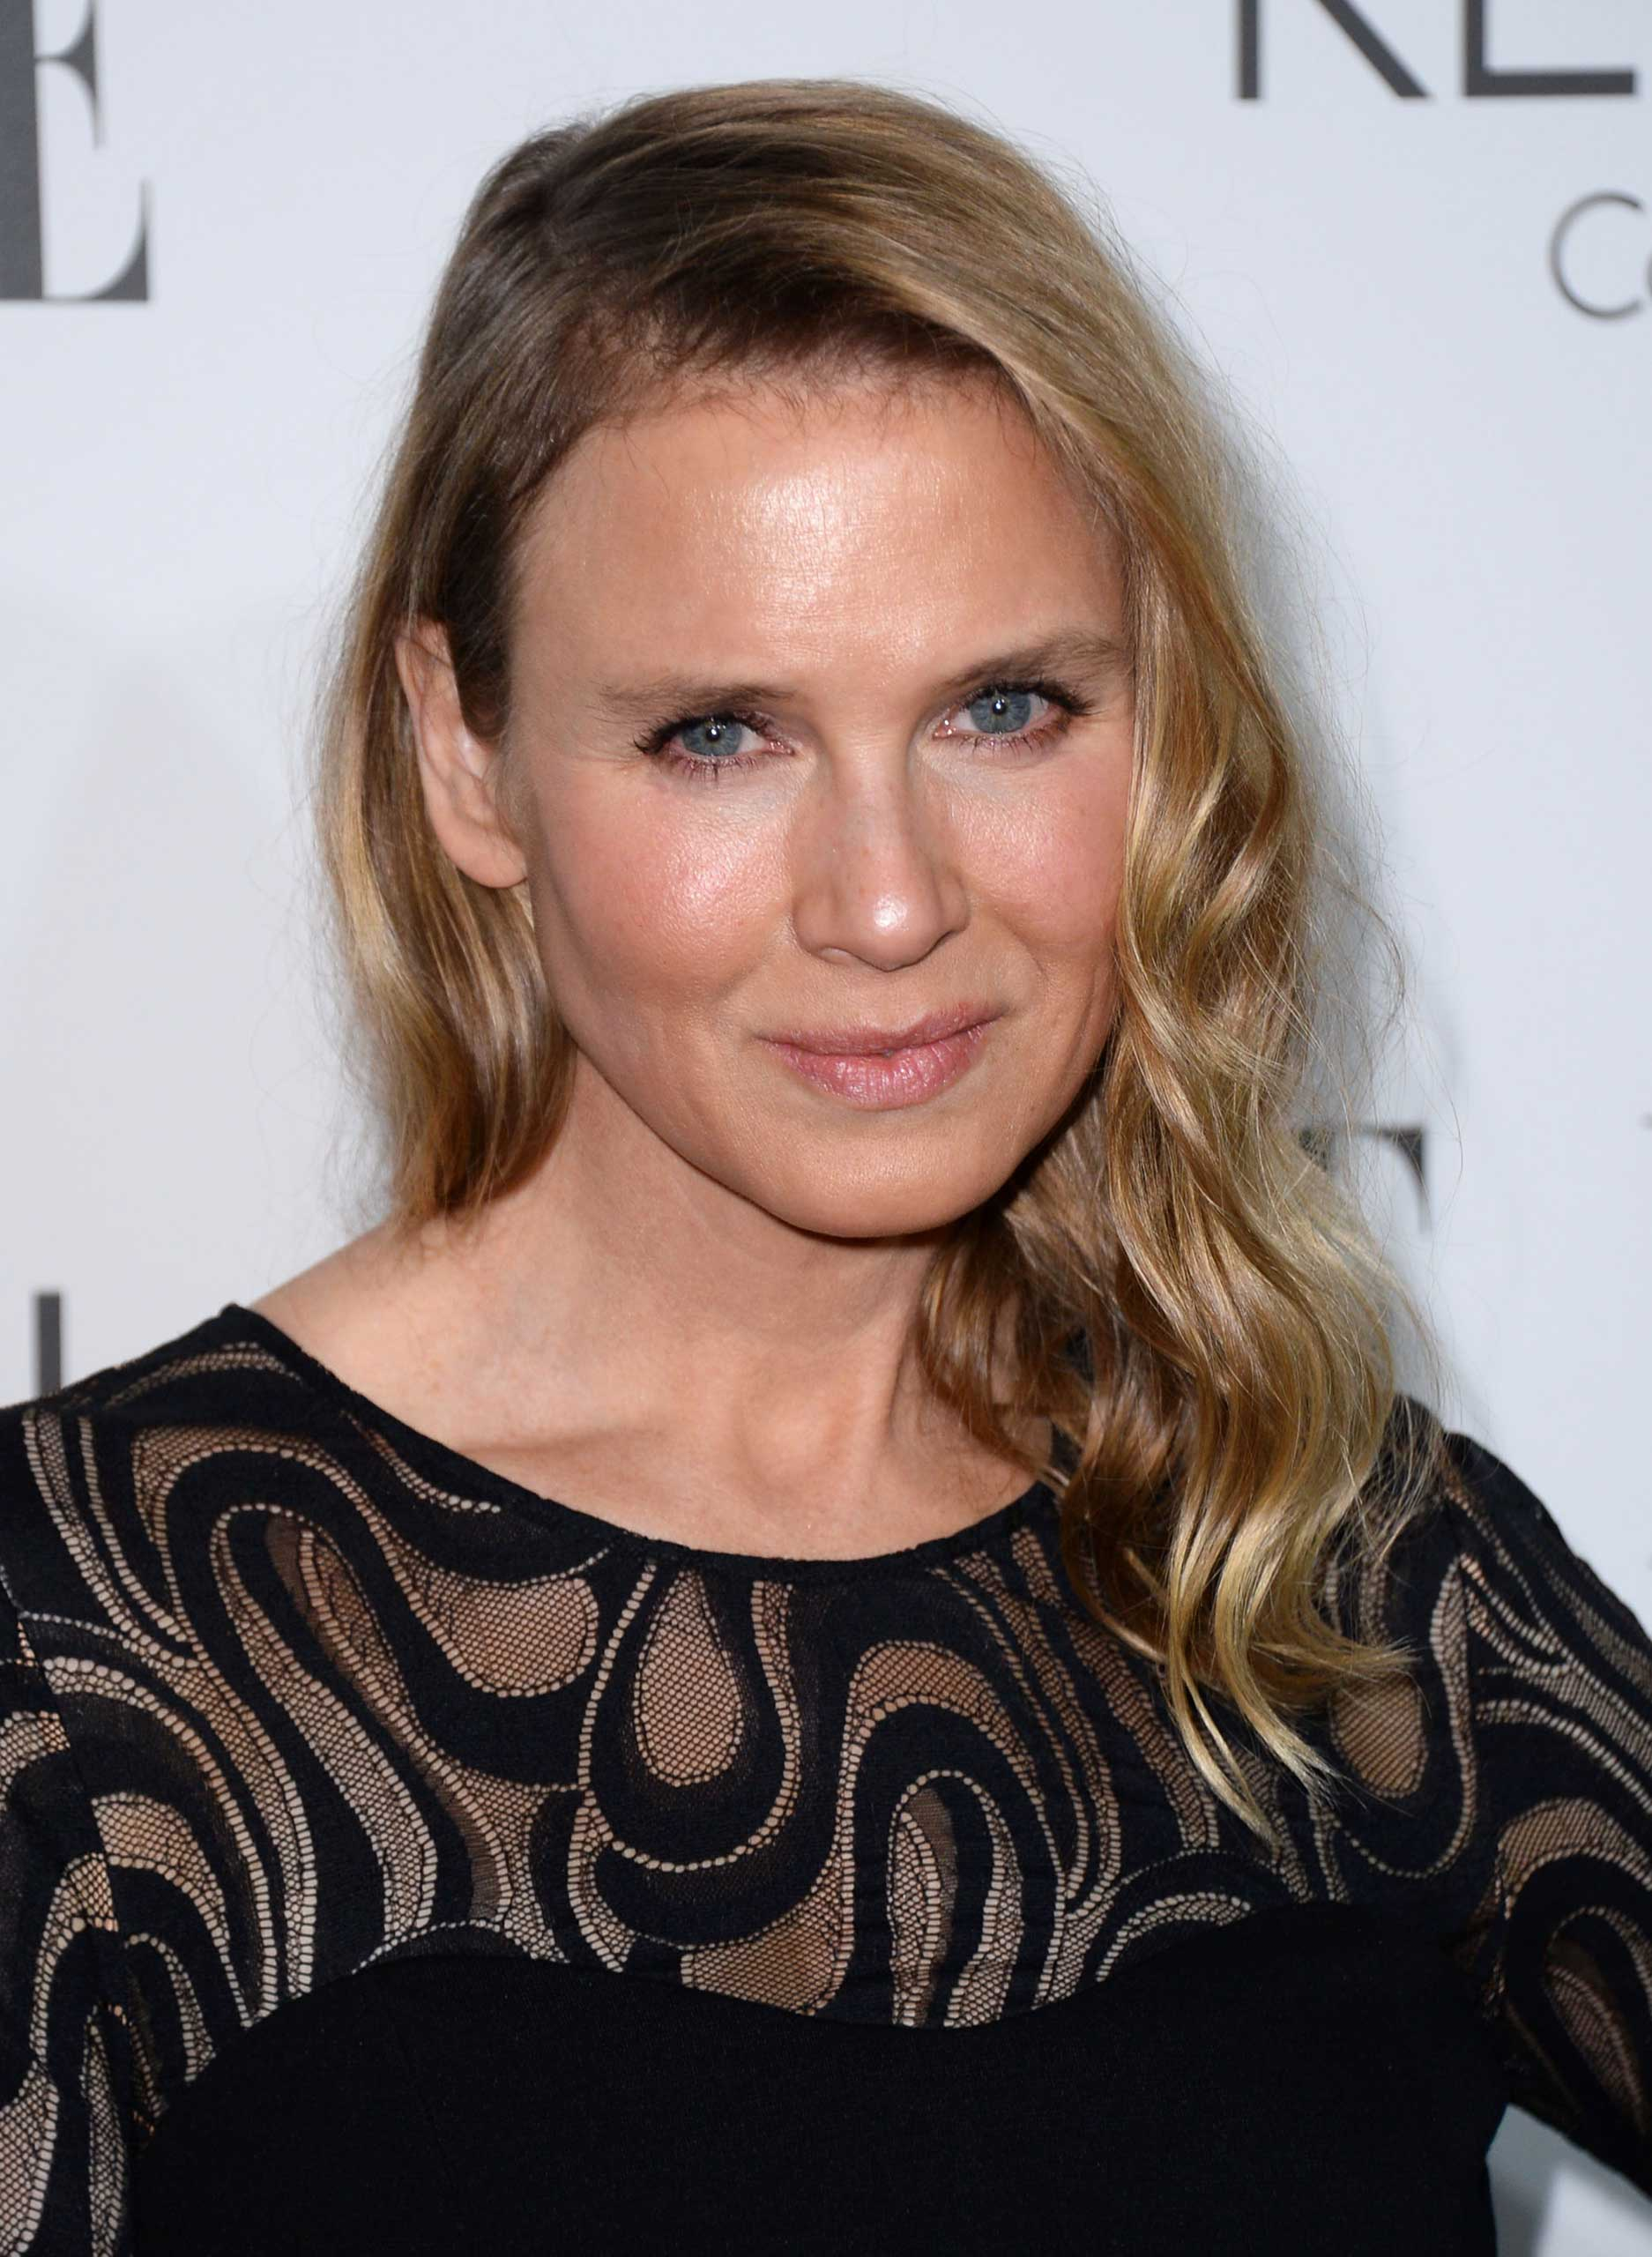 Renee Zellweger arrives at ELLE's 21st annual Women In Hollywood Awards at the Four Season Hotel on Oct. 20, 2014, in Los Angeles.